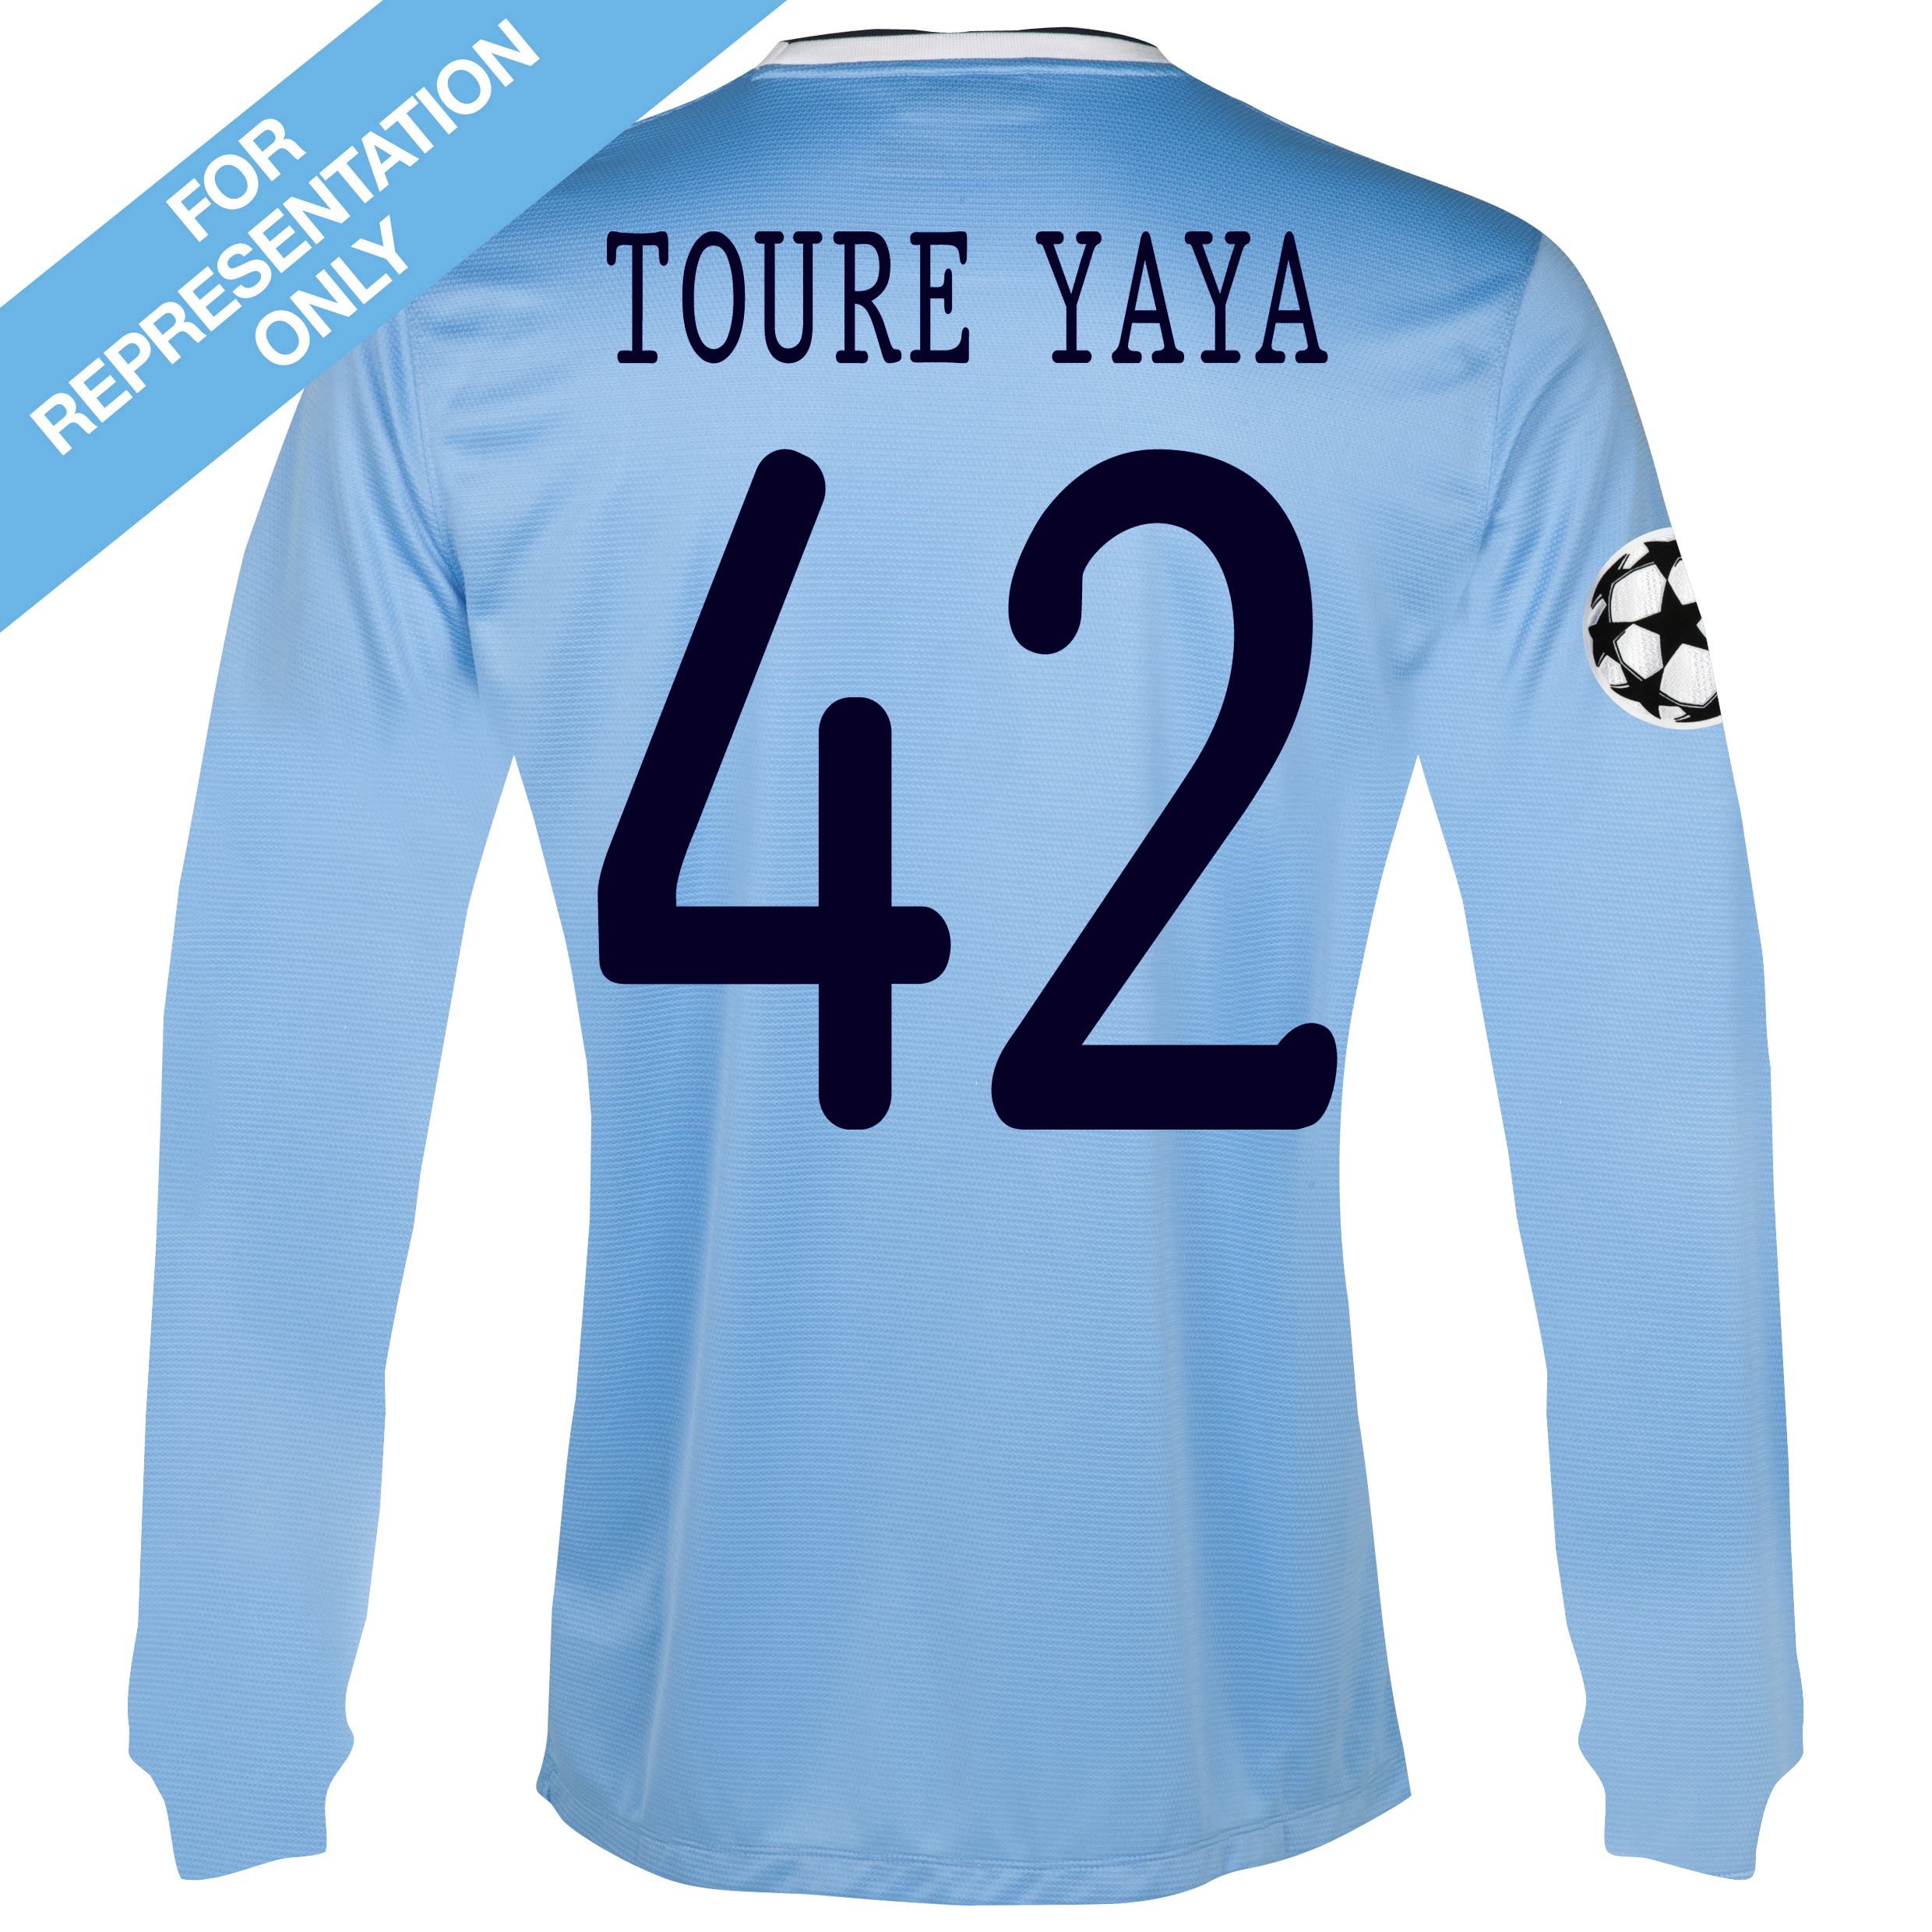 Manchester City UEFA Champions League Home Shirt 2013/14 - Long Sleeved with Toure Yaya 42 printing